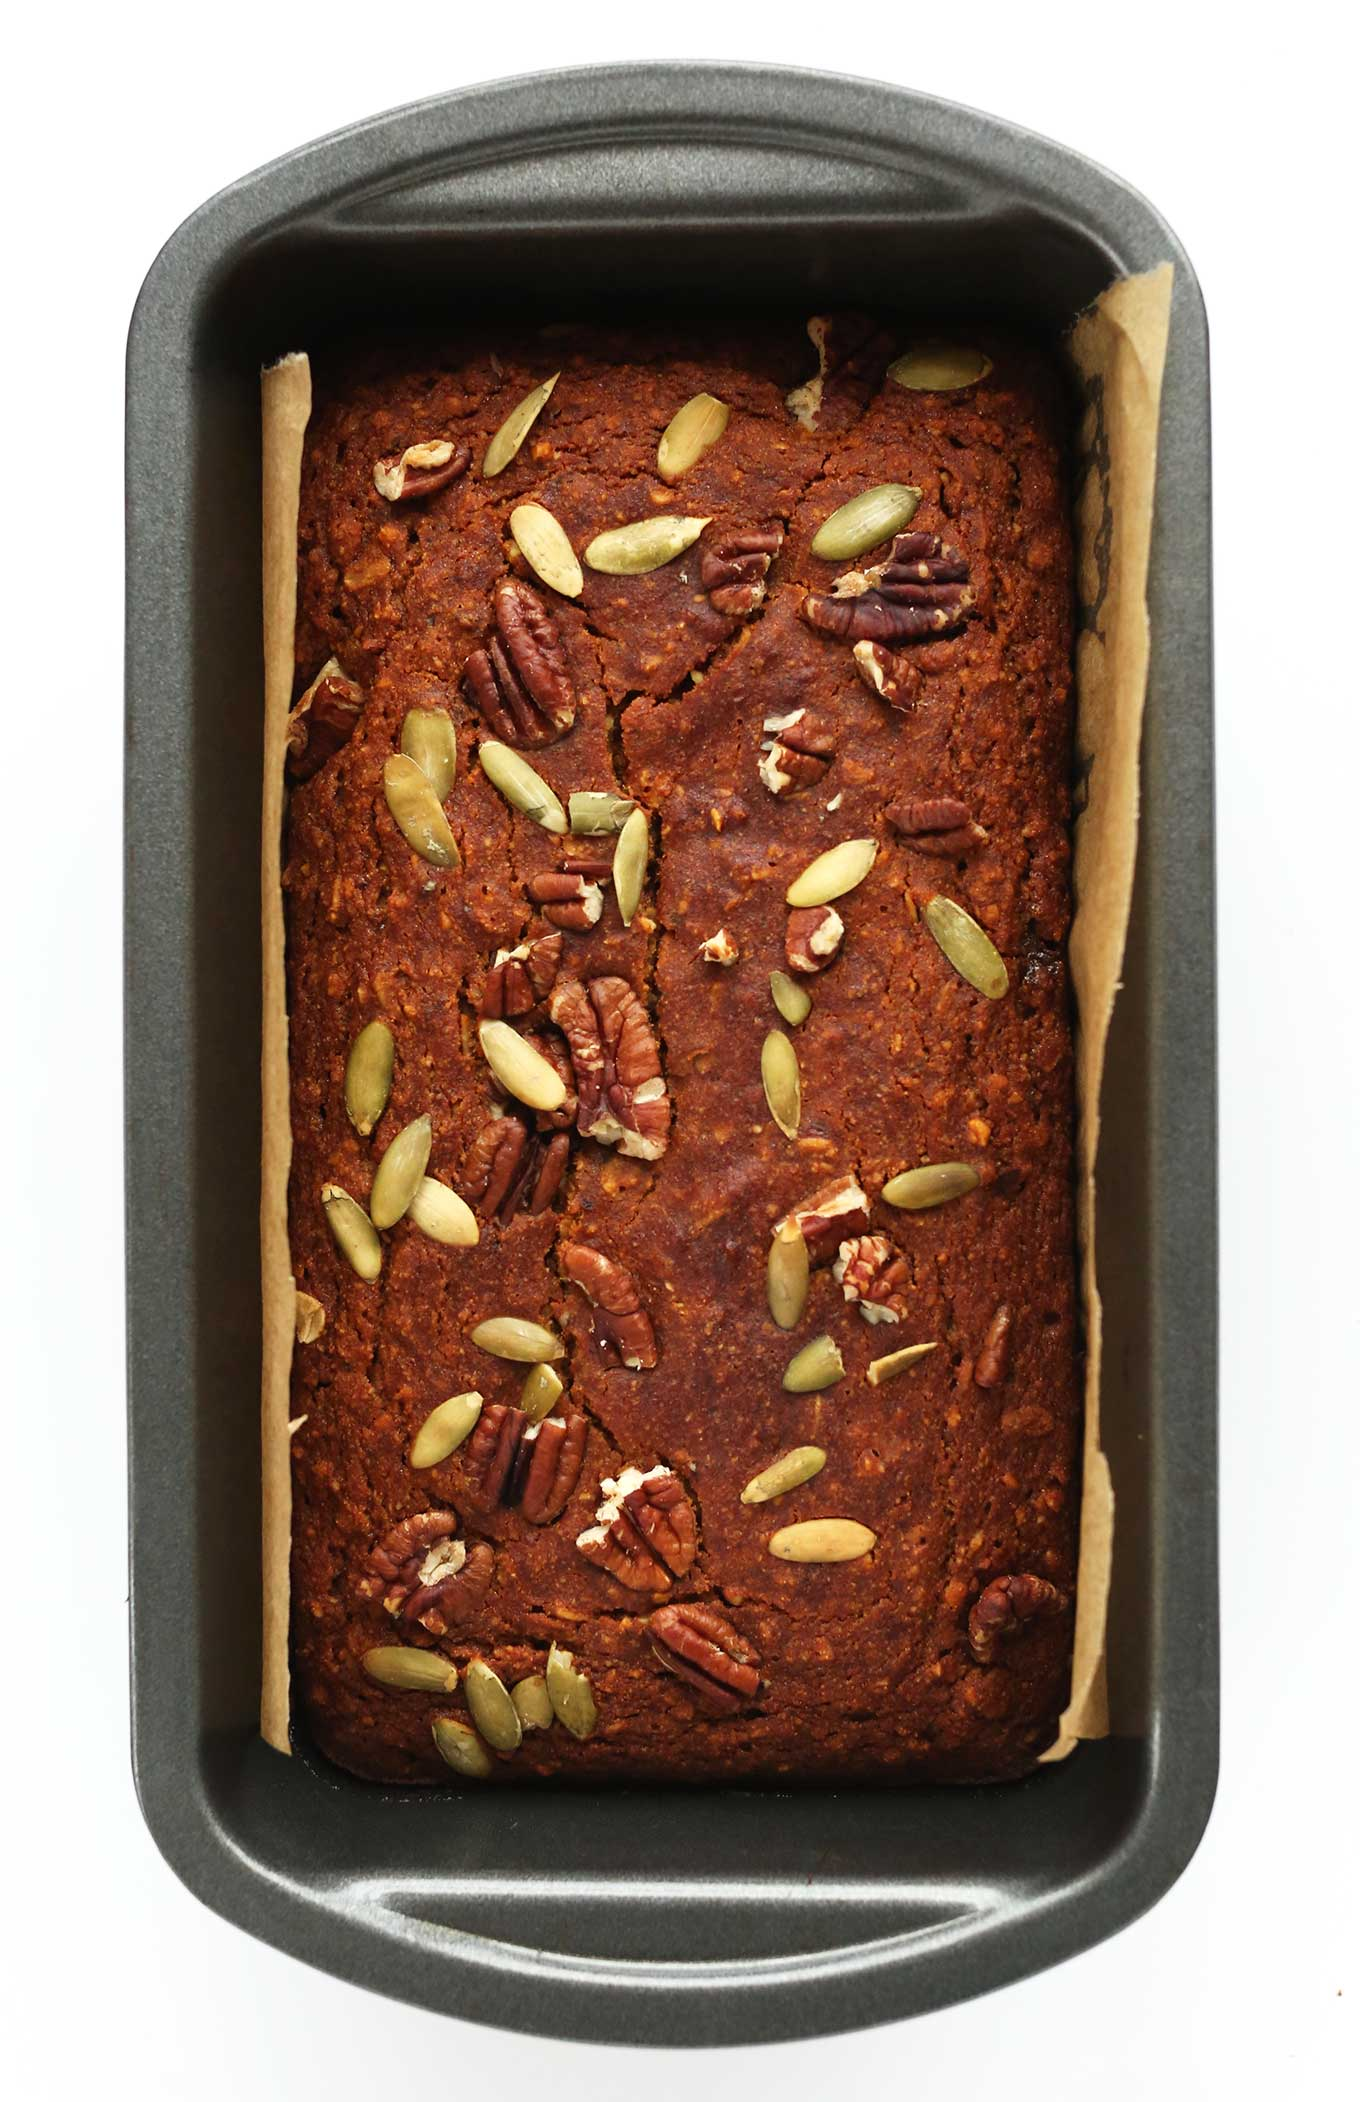 Parchment-lined baking pan filled with Vegan Gluten-Free Pumpkin Bread